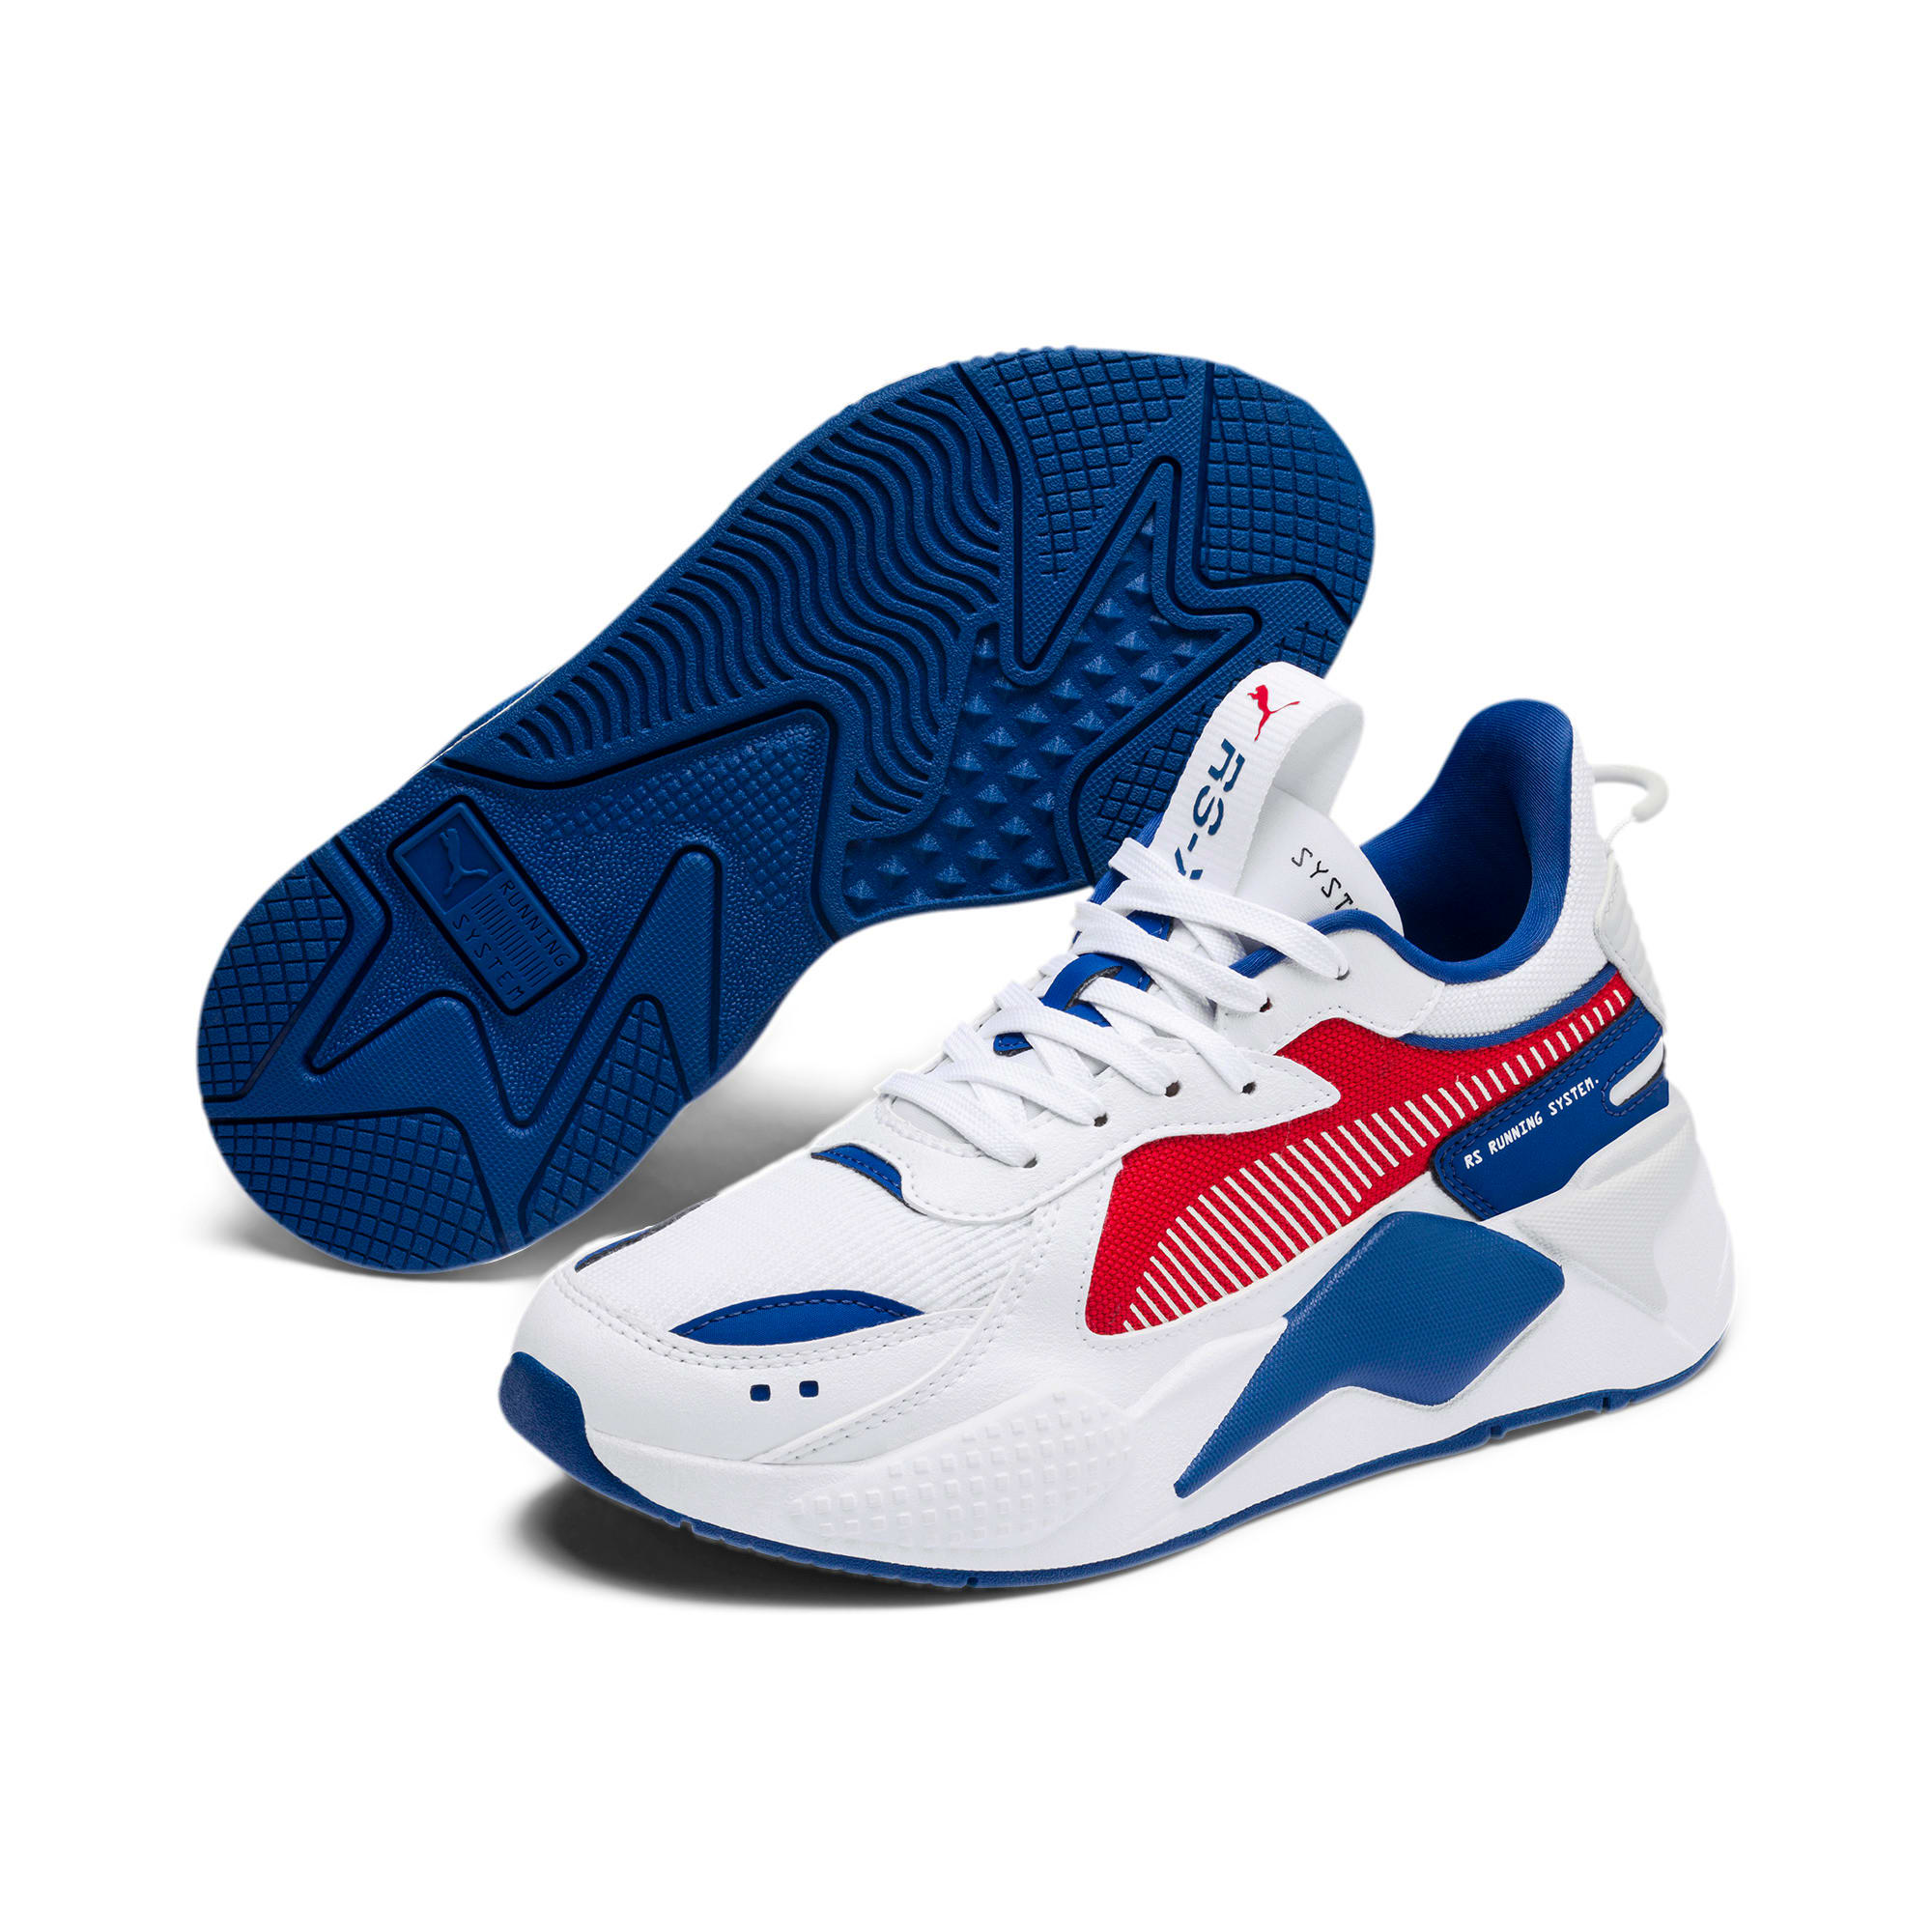 Thumbnail 2 of RS-X Hard Drive Youth Trainers, Puma White-High Risk Red, medium